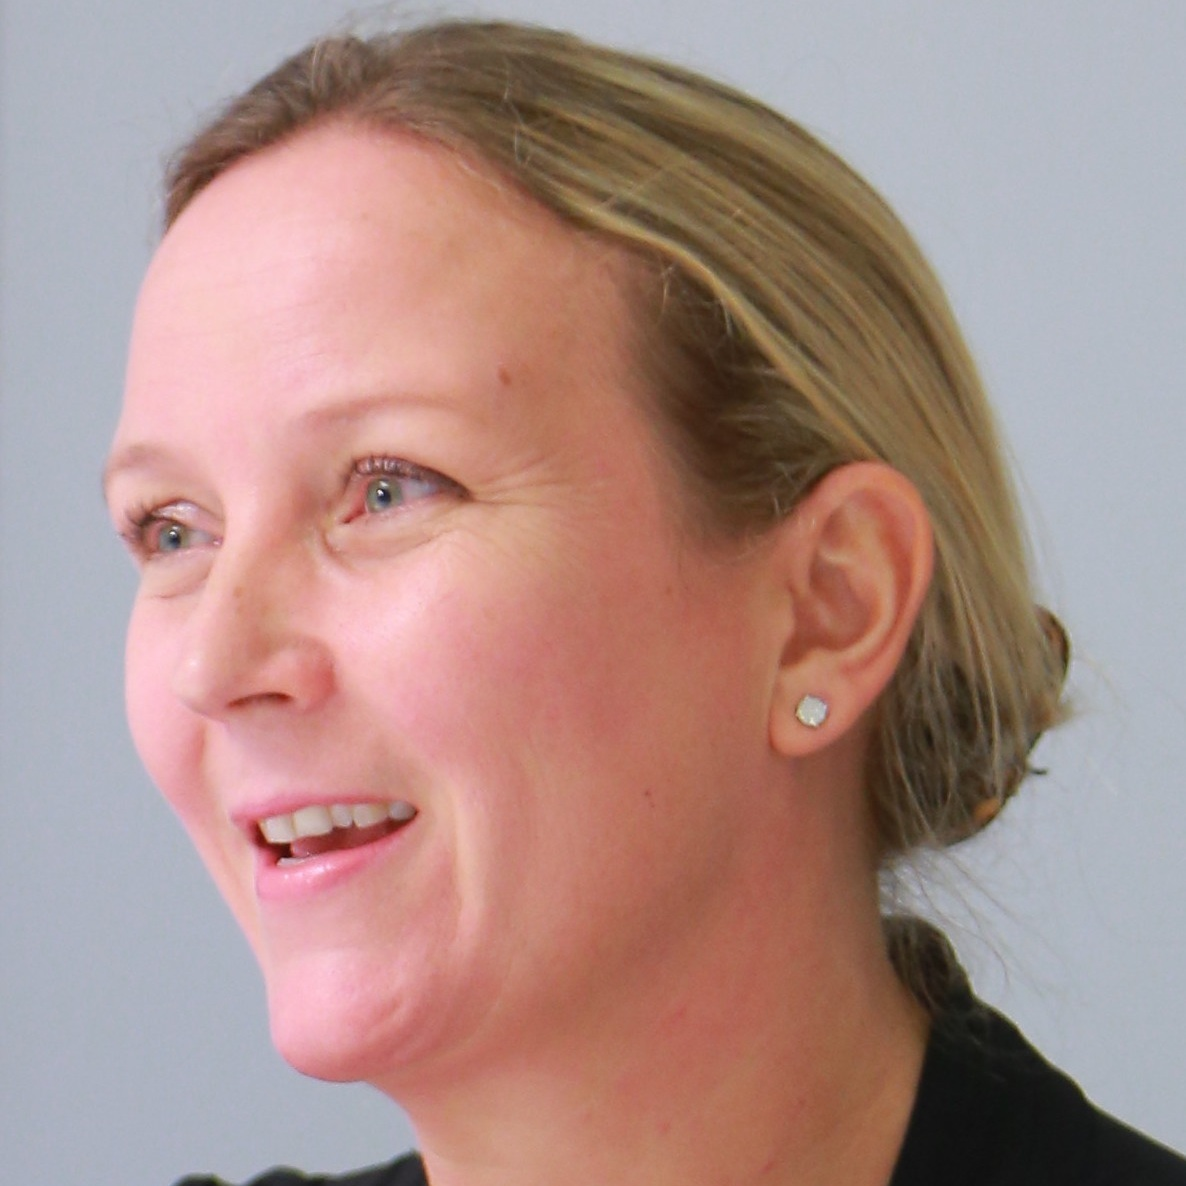 Marieke van Raaij - Marieke's career as a Human Resources Consultant spans more than two decades, with the last 15 years spent in Hong Kong and Singapore. Marieke currently serves as director at a boutique consulting firm, focused on designing, implementing and brokering HR solutions to enable clients' digital transformation journey.Previously, Marieke was a senior consultant at KNOLSKAPE, with the remit to help clients address their talent transformation needs in the digital world.Before that Marieke was with Willis Towers Watson in London and for ten years Hong Kong, leading the team focused on driving employee engagement and a positive organisational culture.